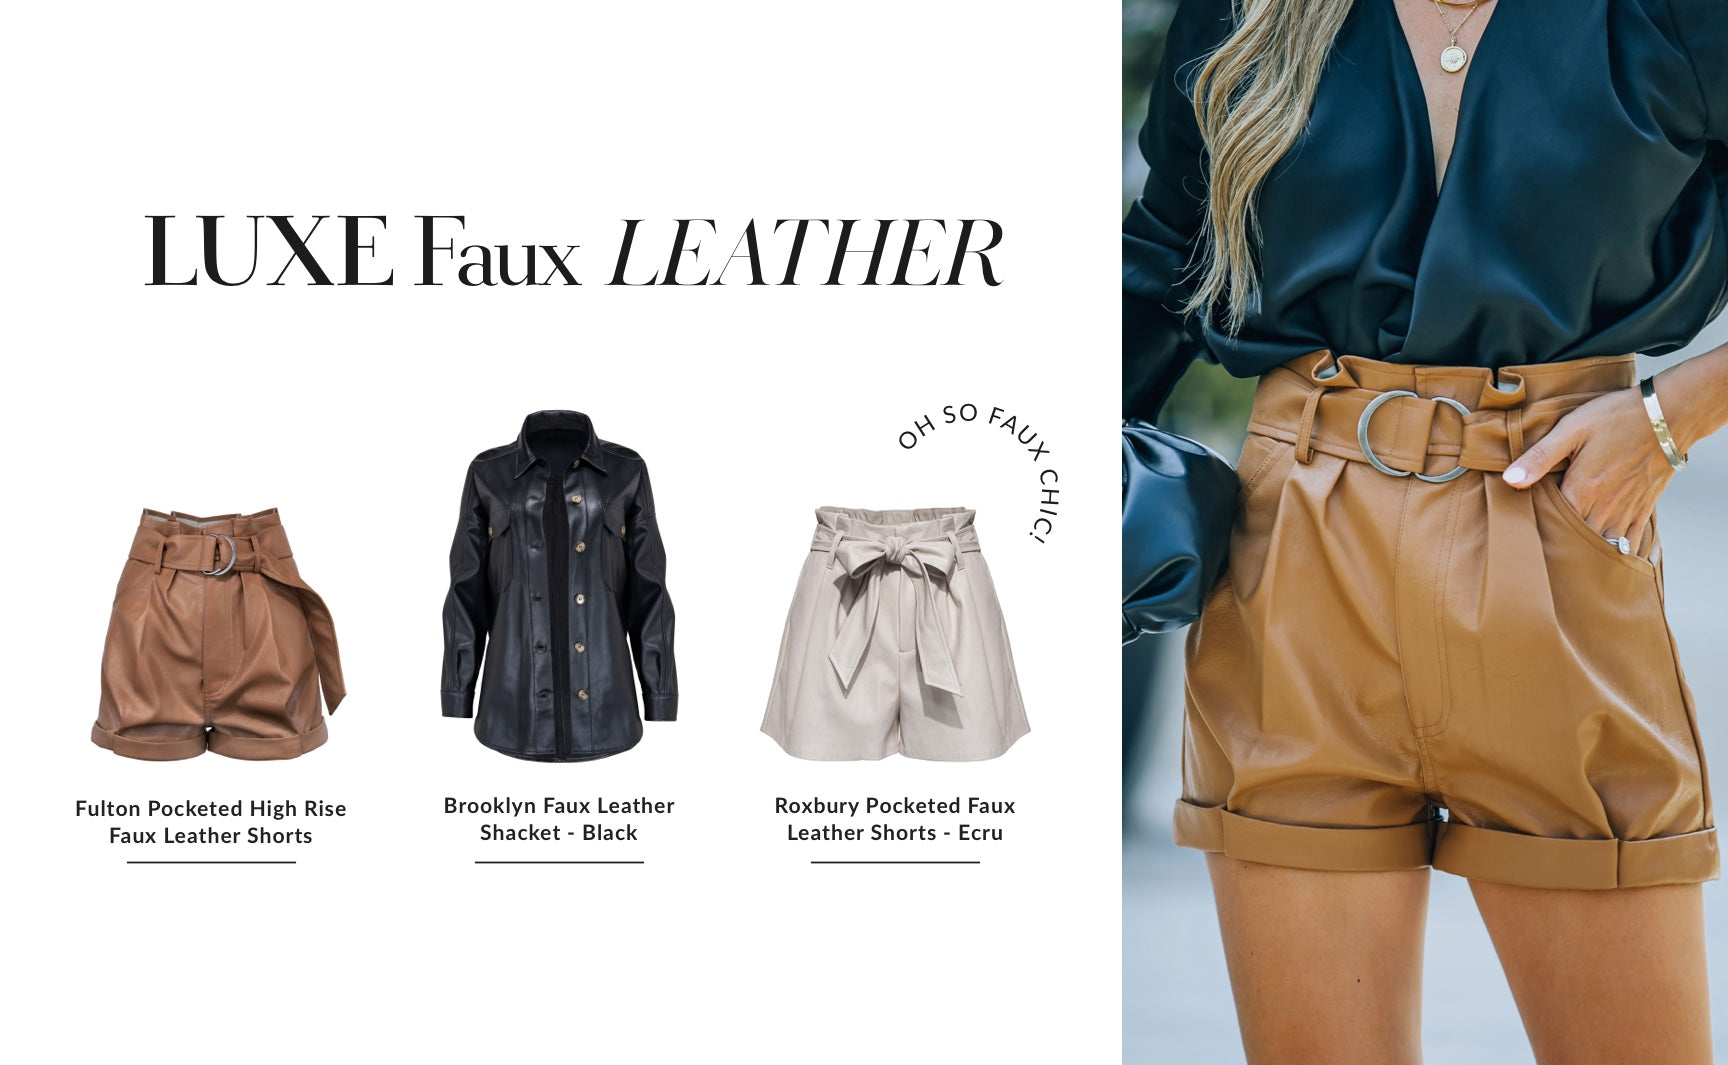 It goes without saying that any item of buttery faux leather will make your outfit look expensive. We've seen the faux leather blazers quite overdone last year, so this year we're latching onto more edgy and elevated shapes. Mix things up with a shacket silhouette paired with black combat boots and distressed denim. If officewear is more your style, leathery paperbag waist pants look so iconic with booties and a chunky sweater. Shop Faux Leather